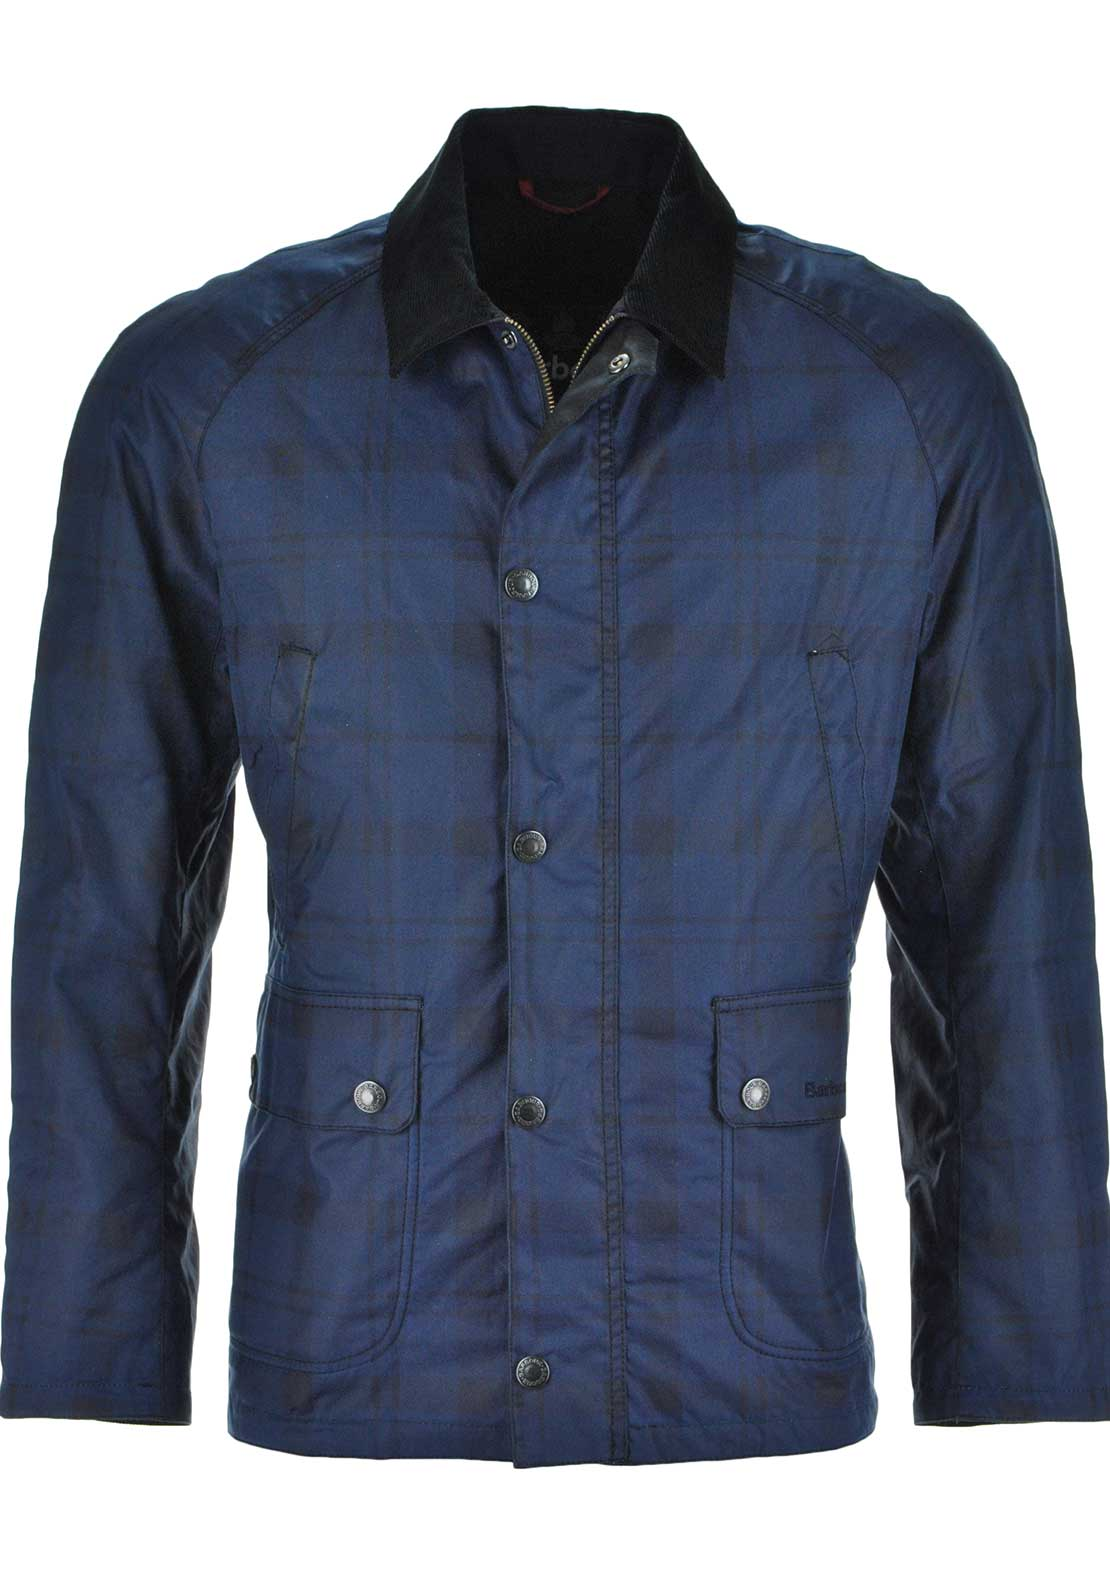 Barbour Mens Alness Waxed Cotton Jacket, Navy